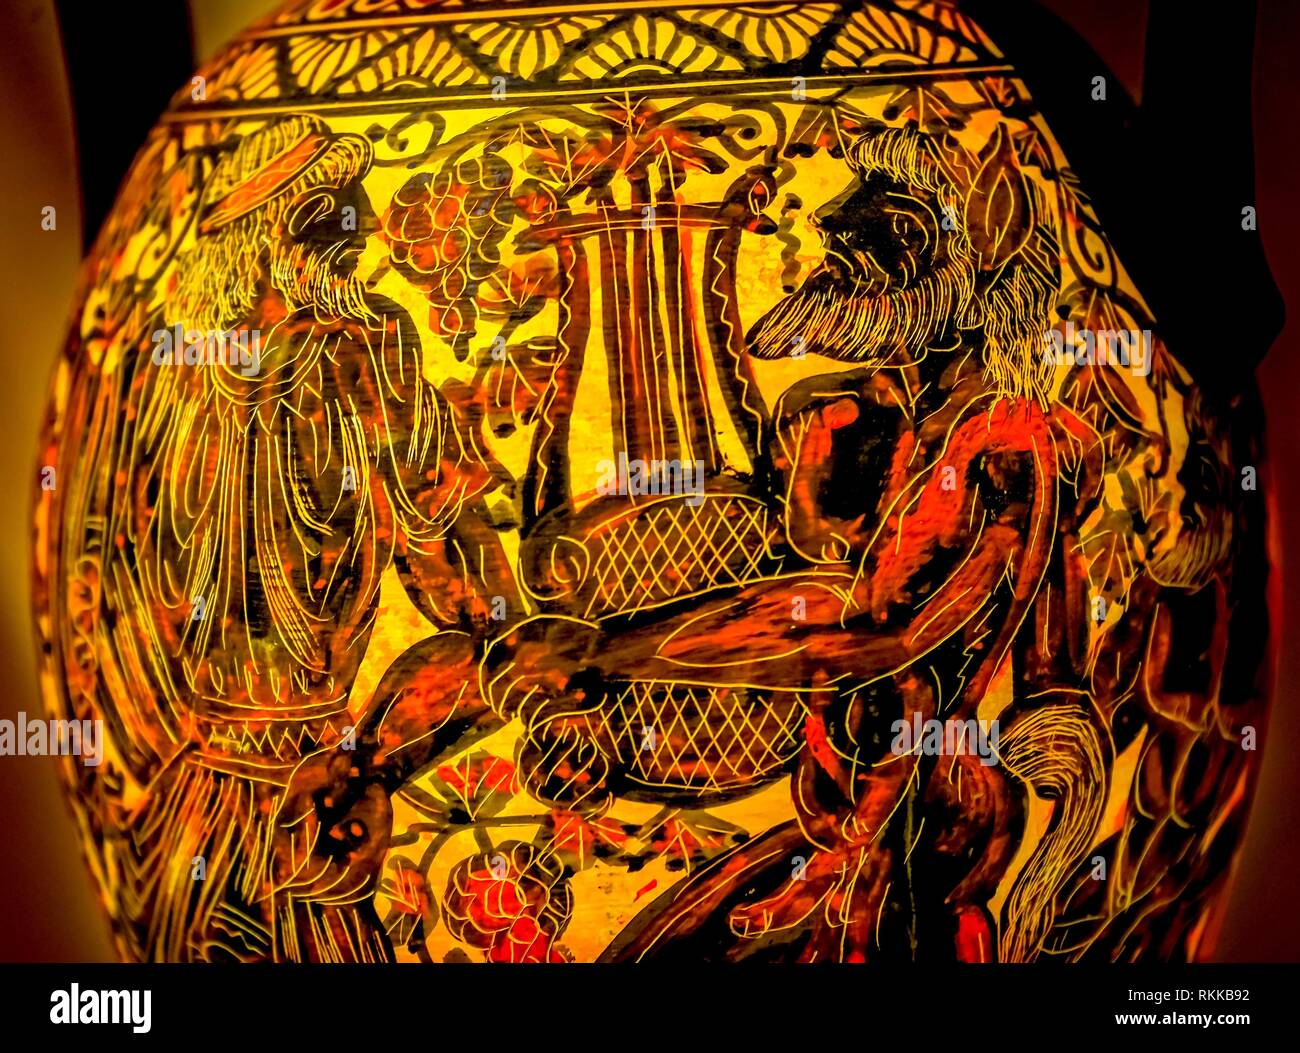 Apollo Giving Orpheus Lyre, Musical instrument, Greek Ancient Replica Pottery Chariot Athens Greece. - Stock Image